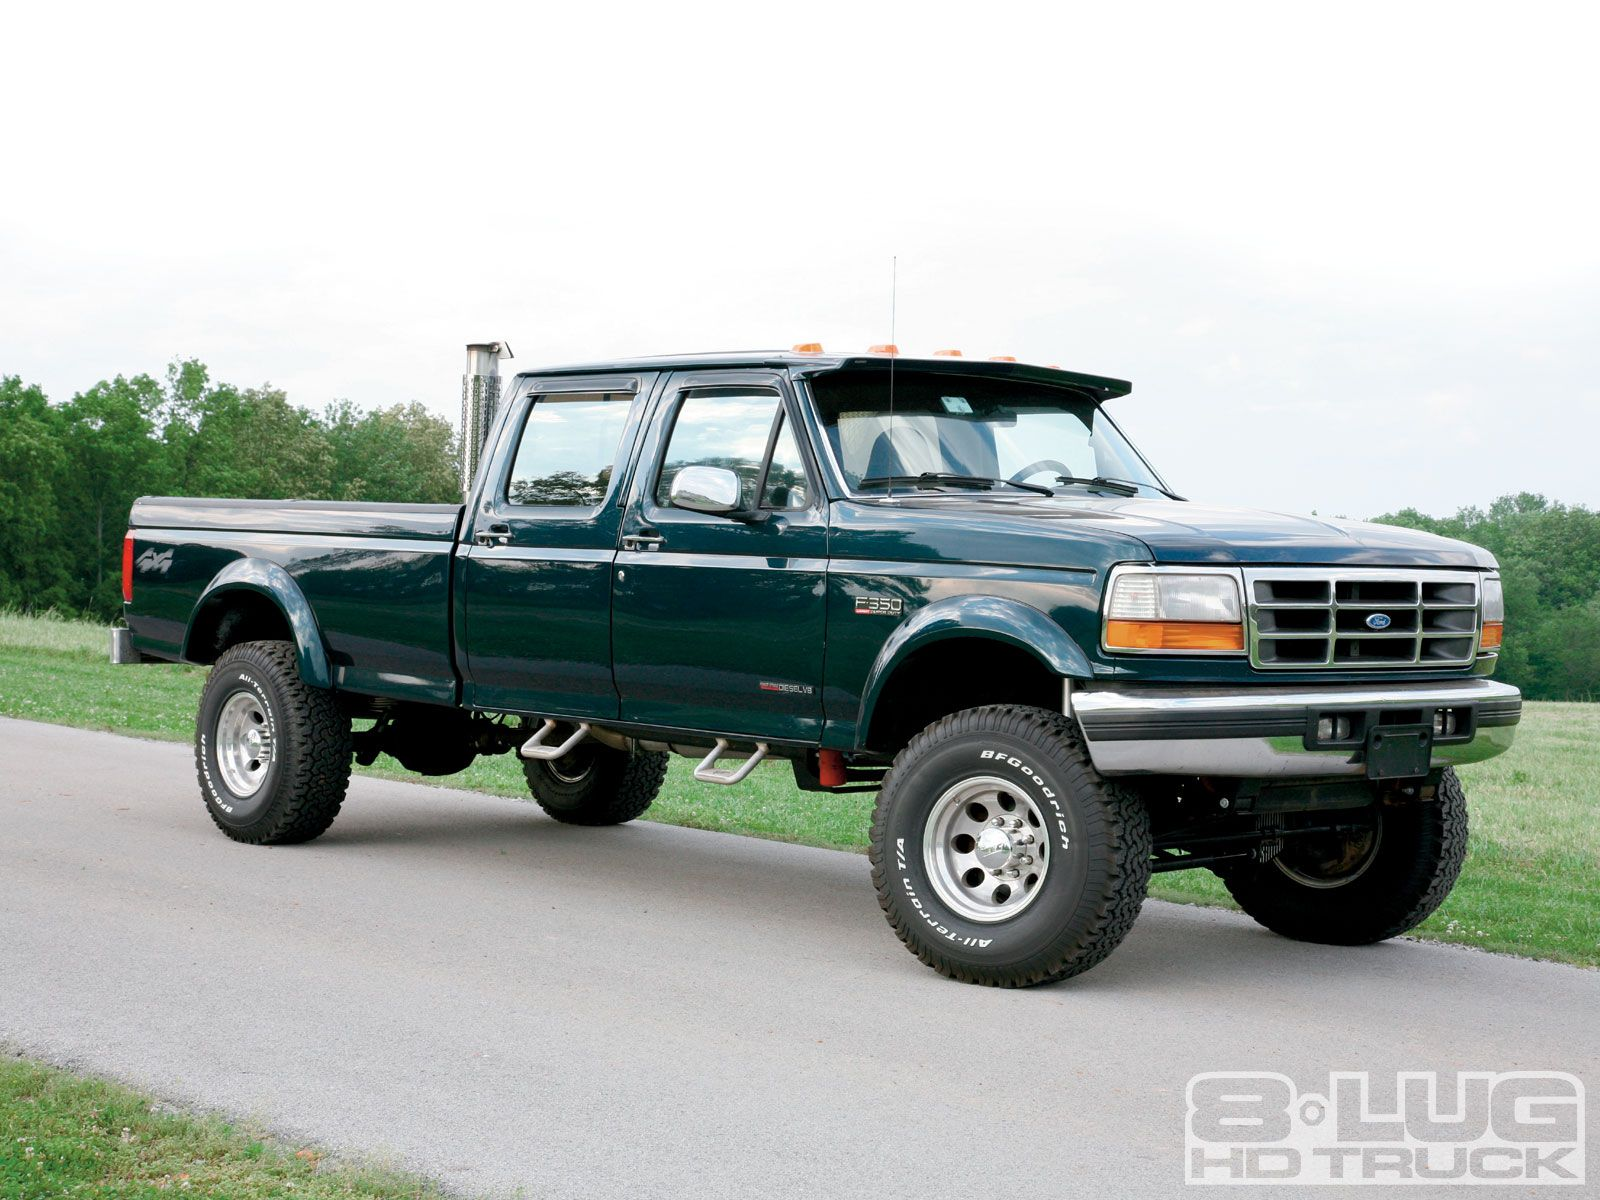 96 f350 jerry s automotive group jerrysauto com jerry s 96 f350 jerry s automotive group jerrysauto com jerry s ford of